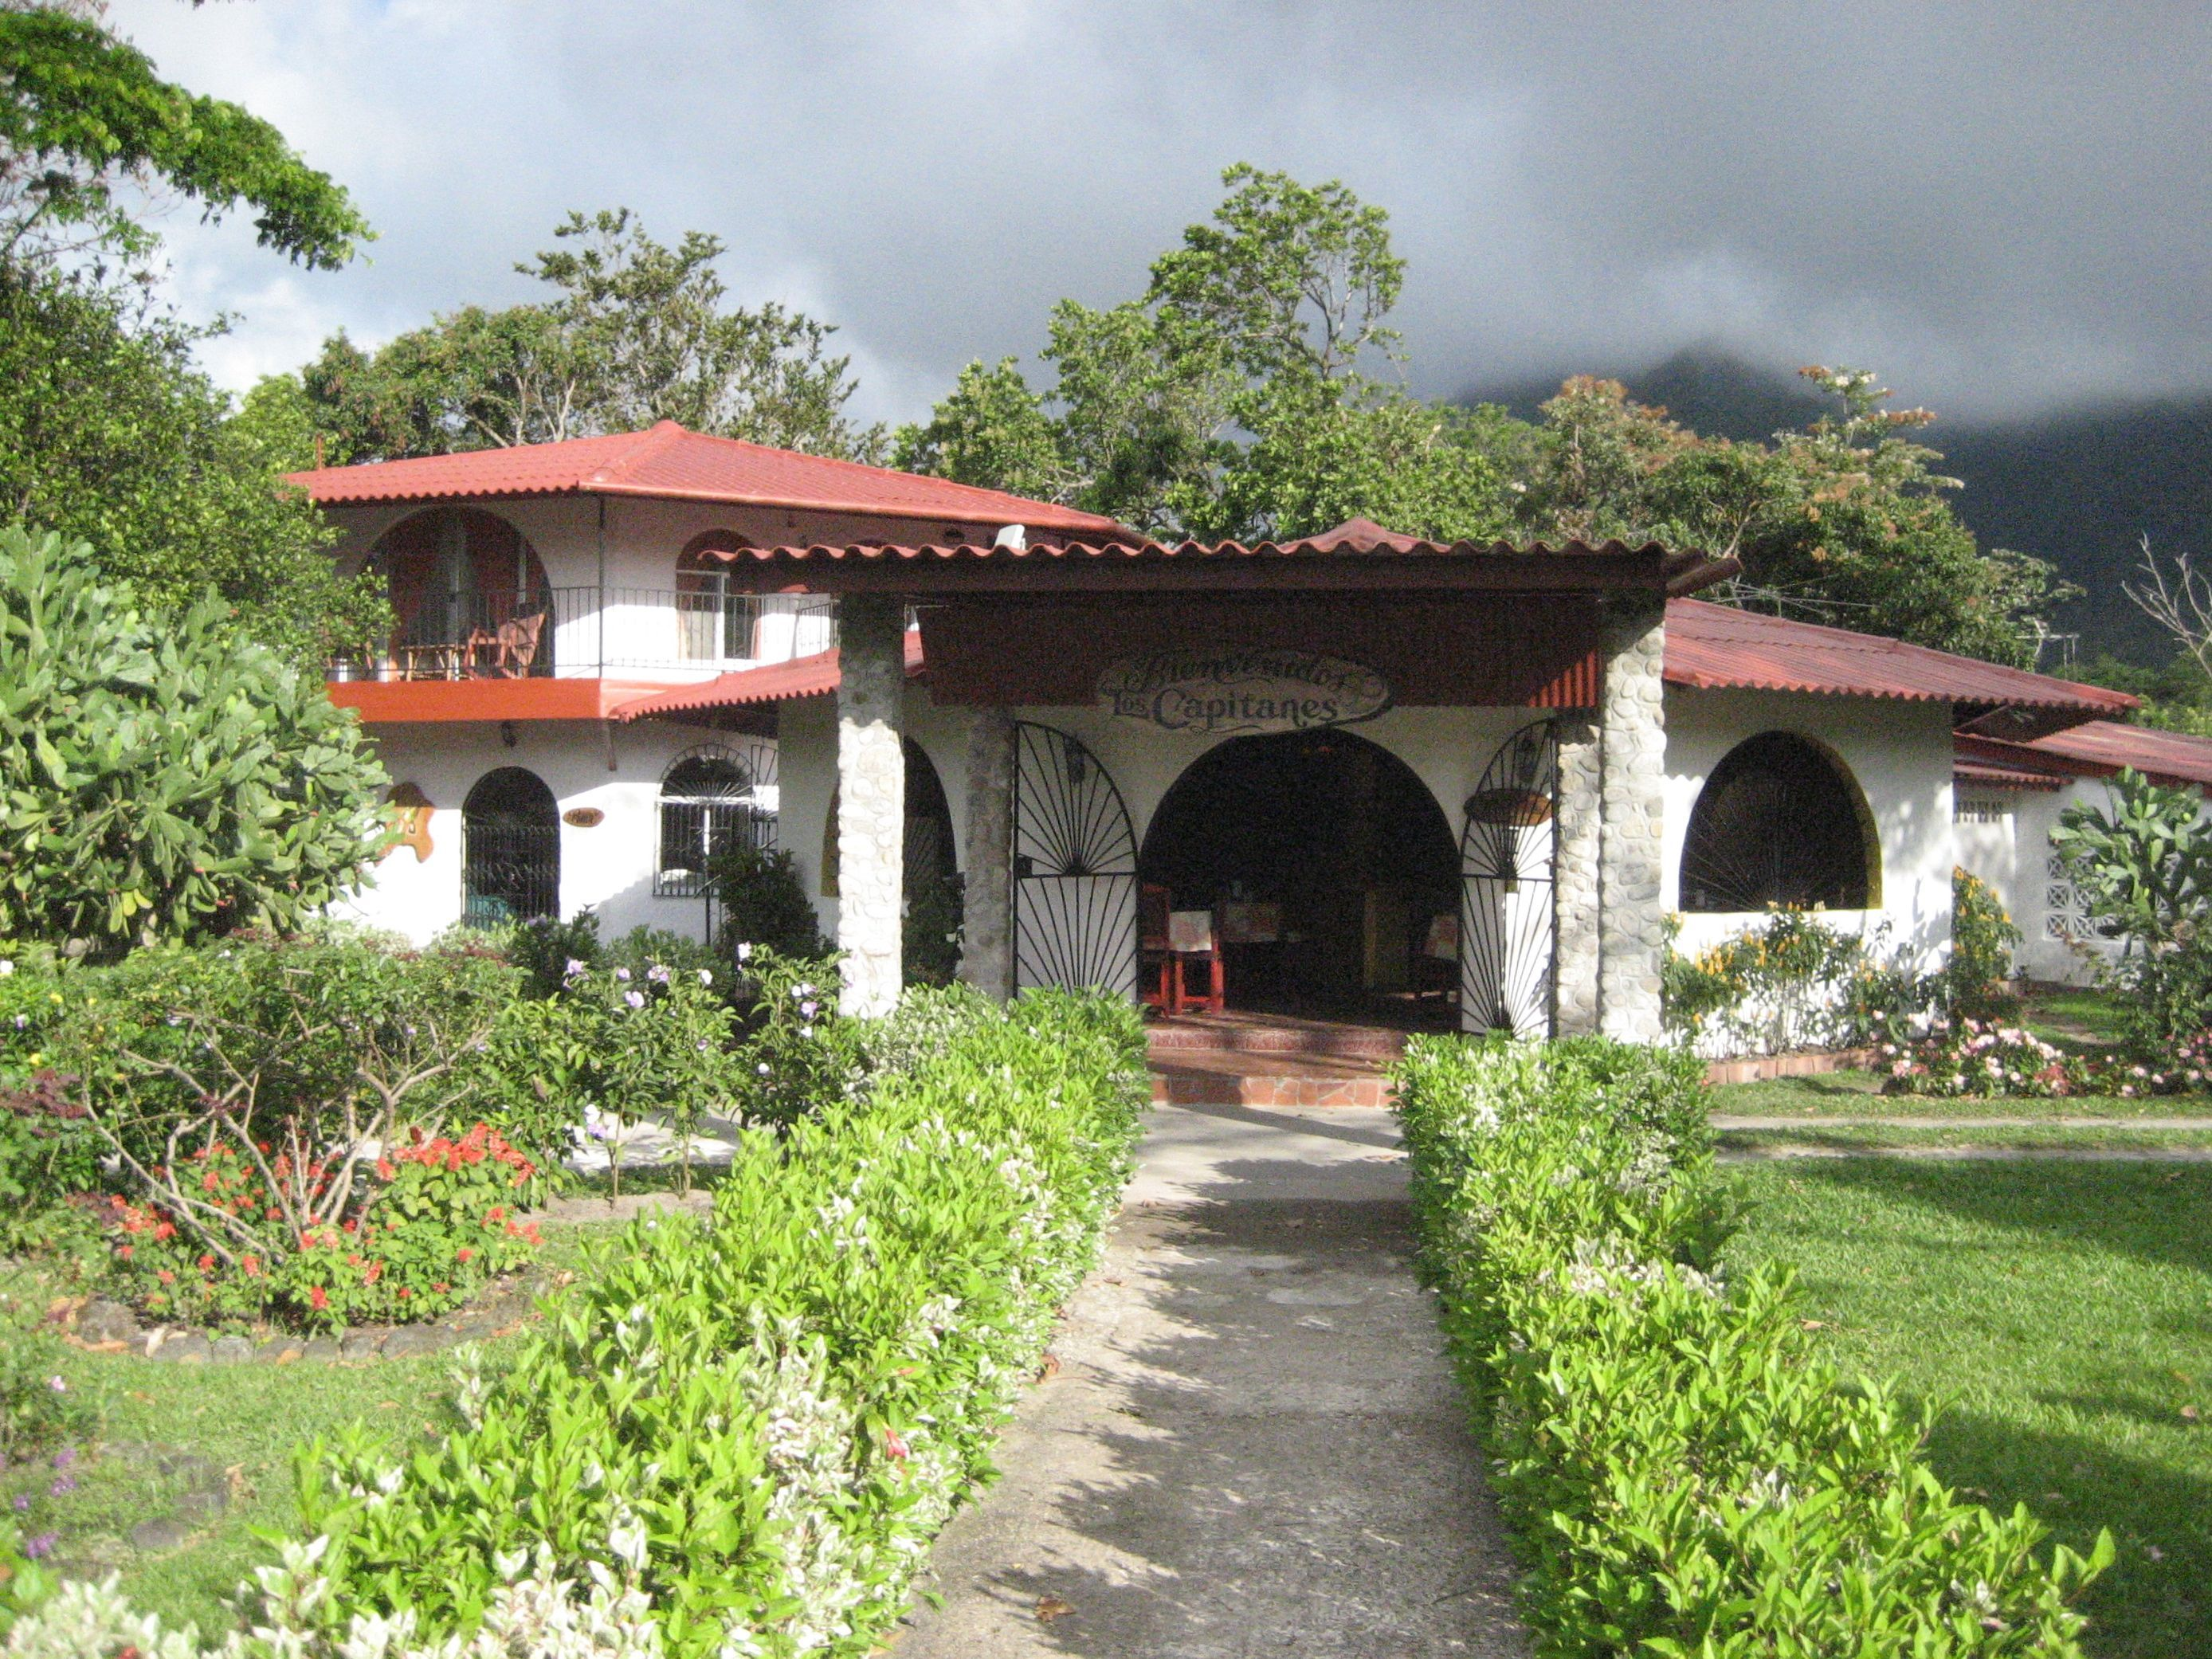 Hotel Los Capitanes Eco-resort